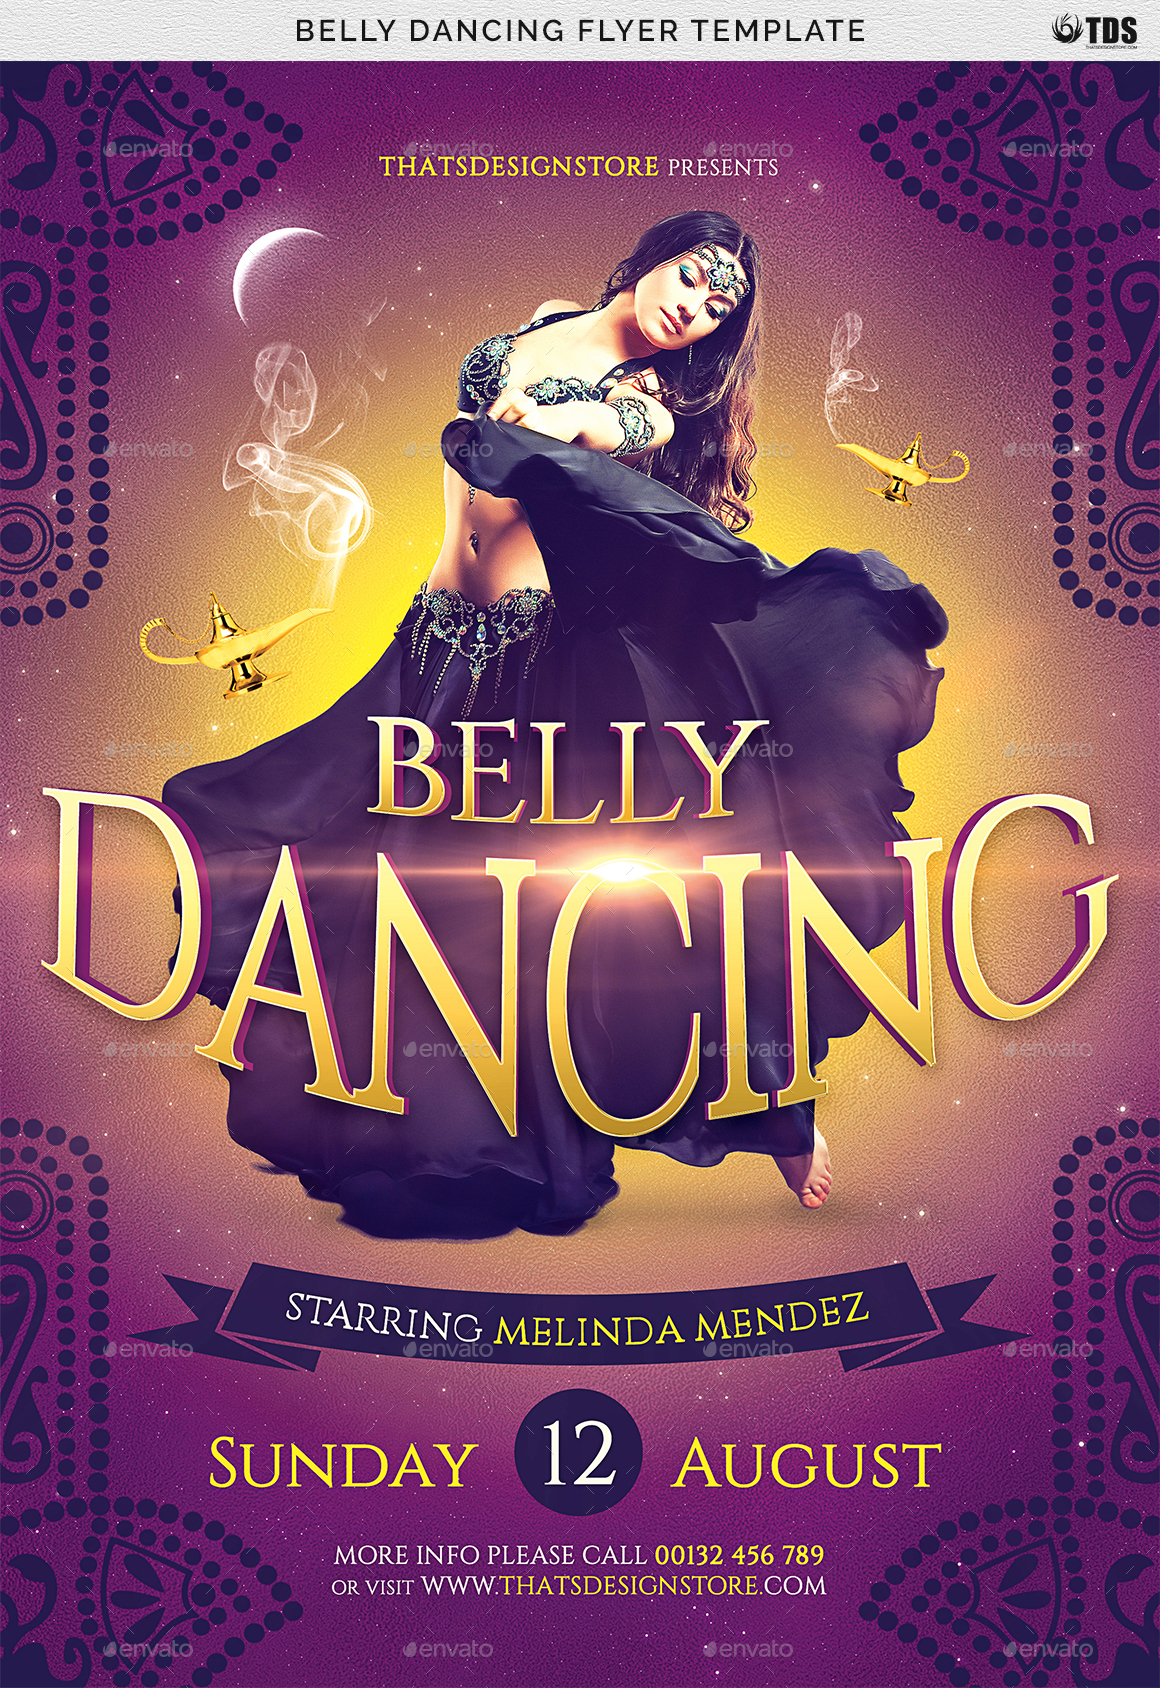 Belly Dancing Flyer Template By Lou606 GraphicRiver